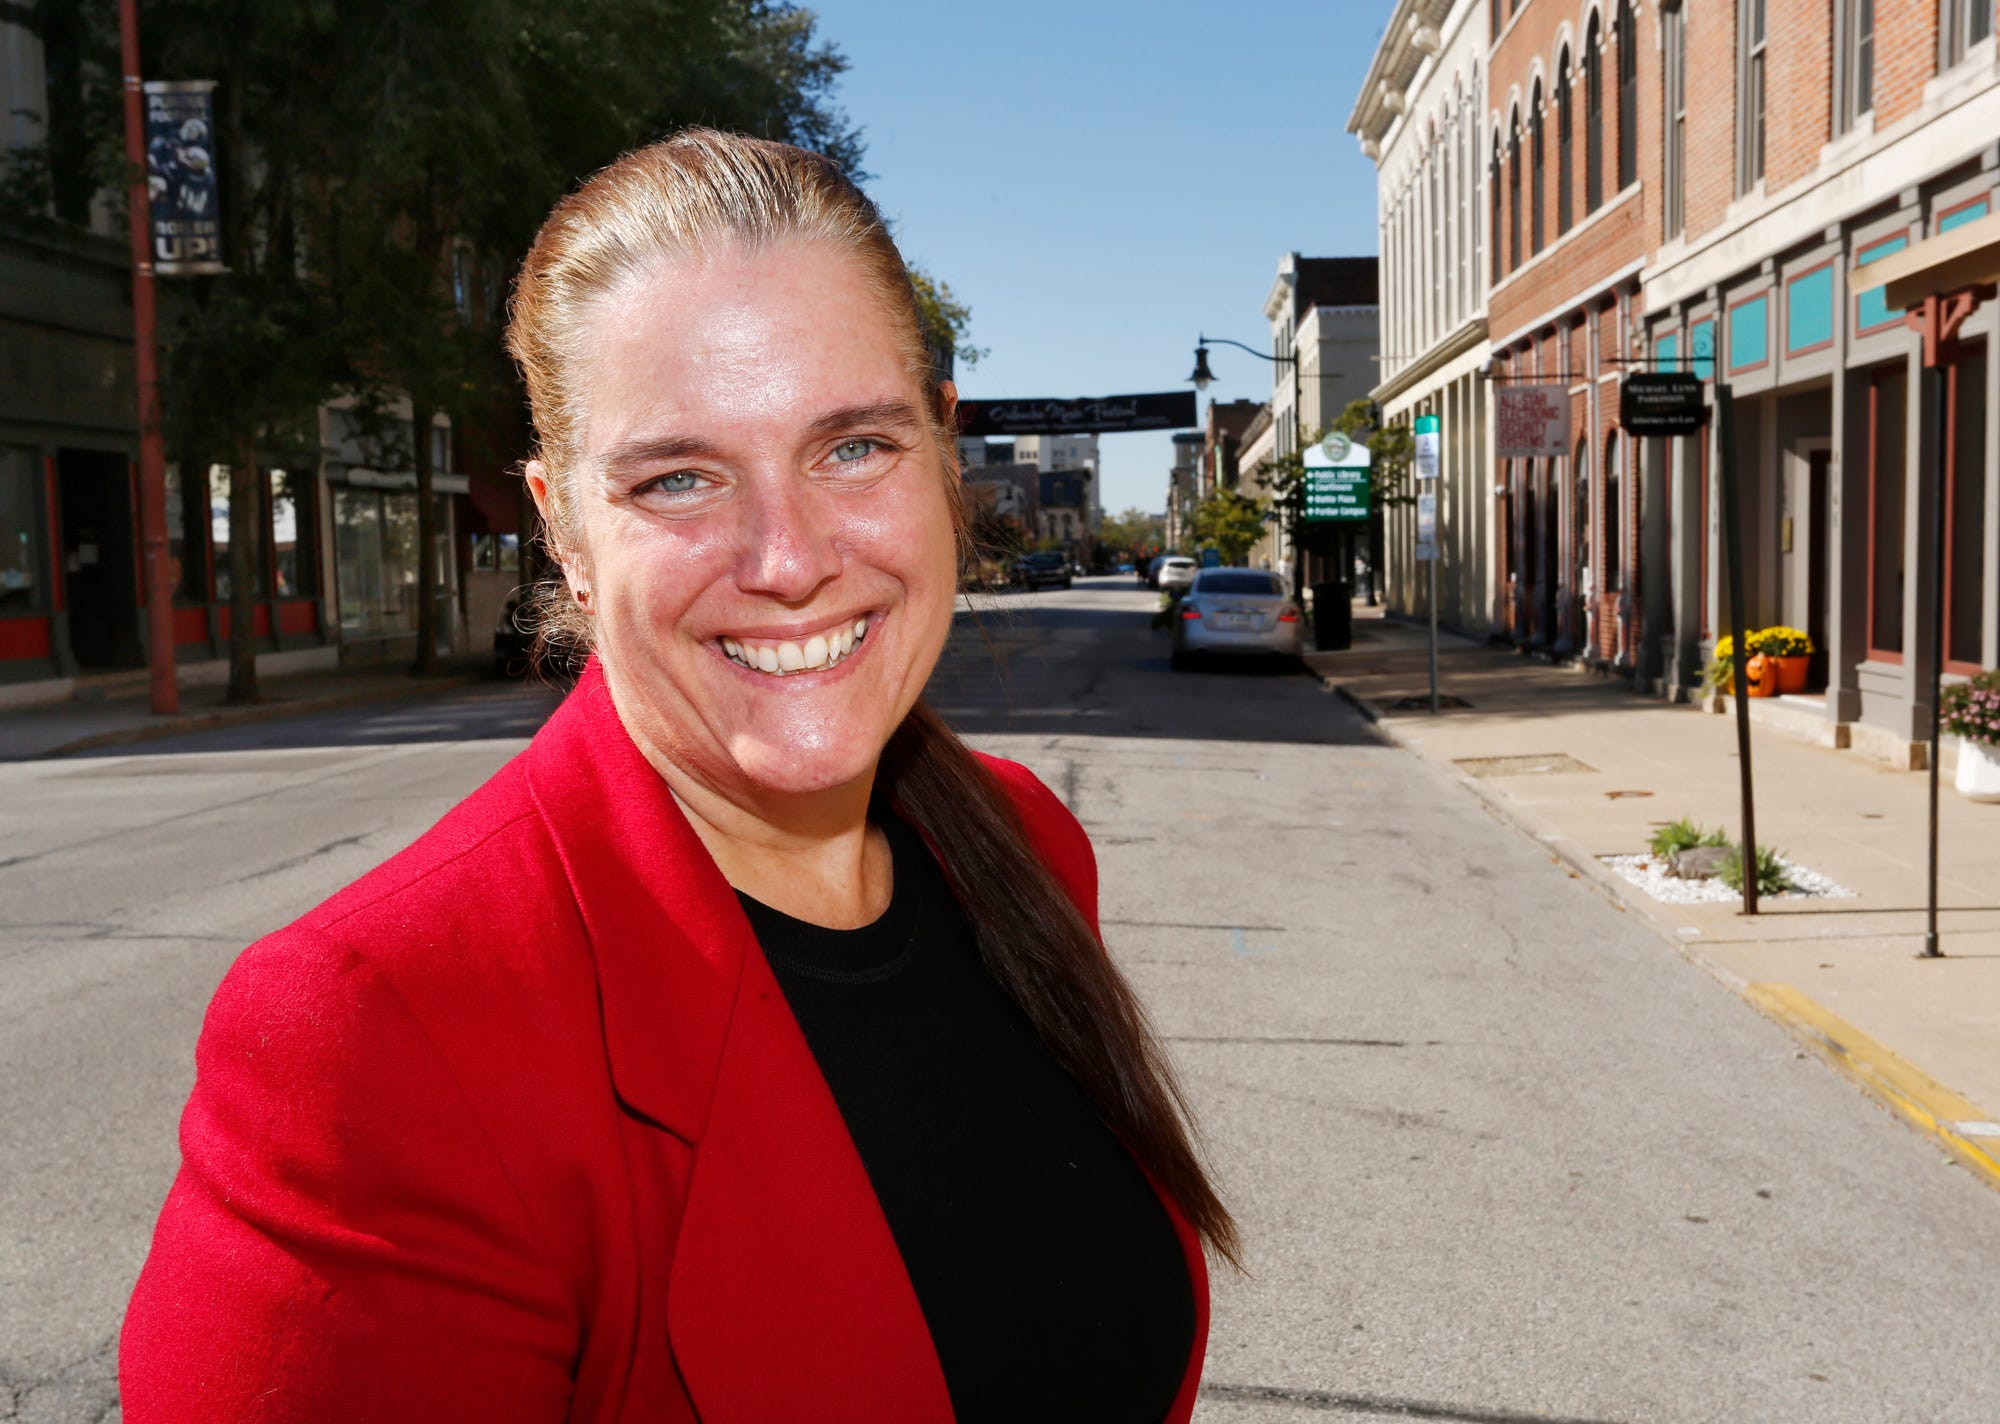 Tobi Beck, Democrat candidate for the 4th Congressional District, Thursday, October 18, 2018, in Lafayette.